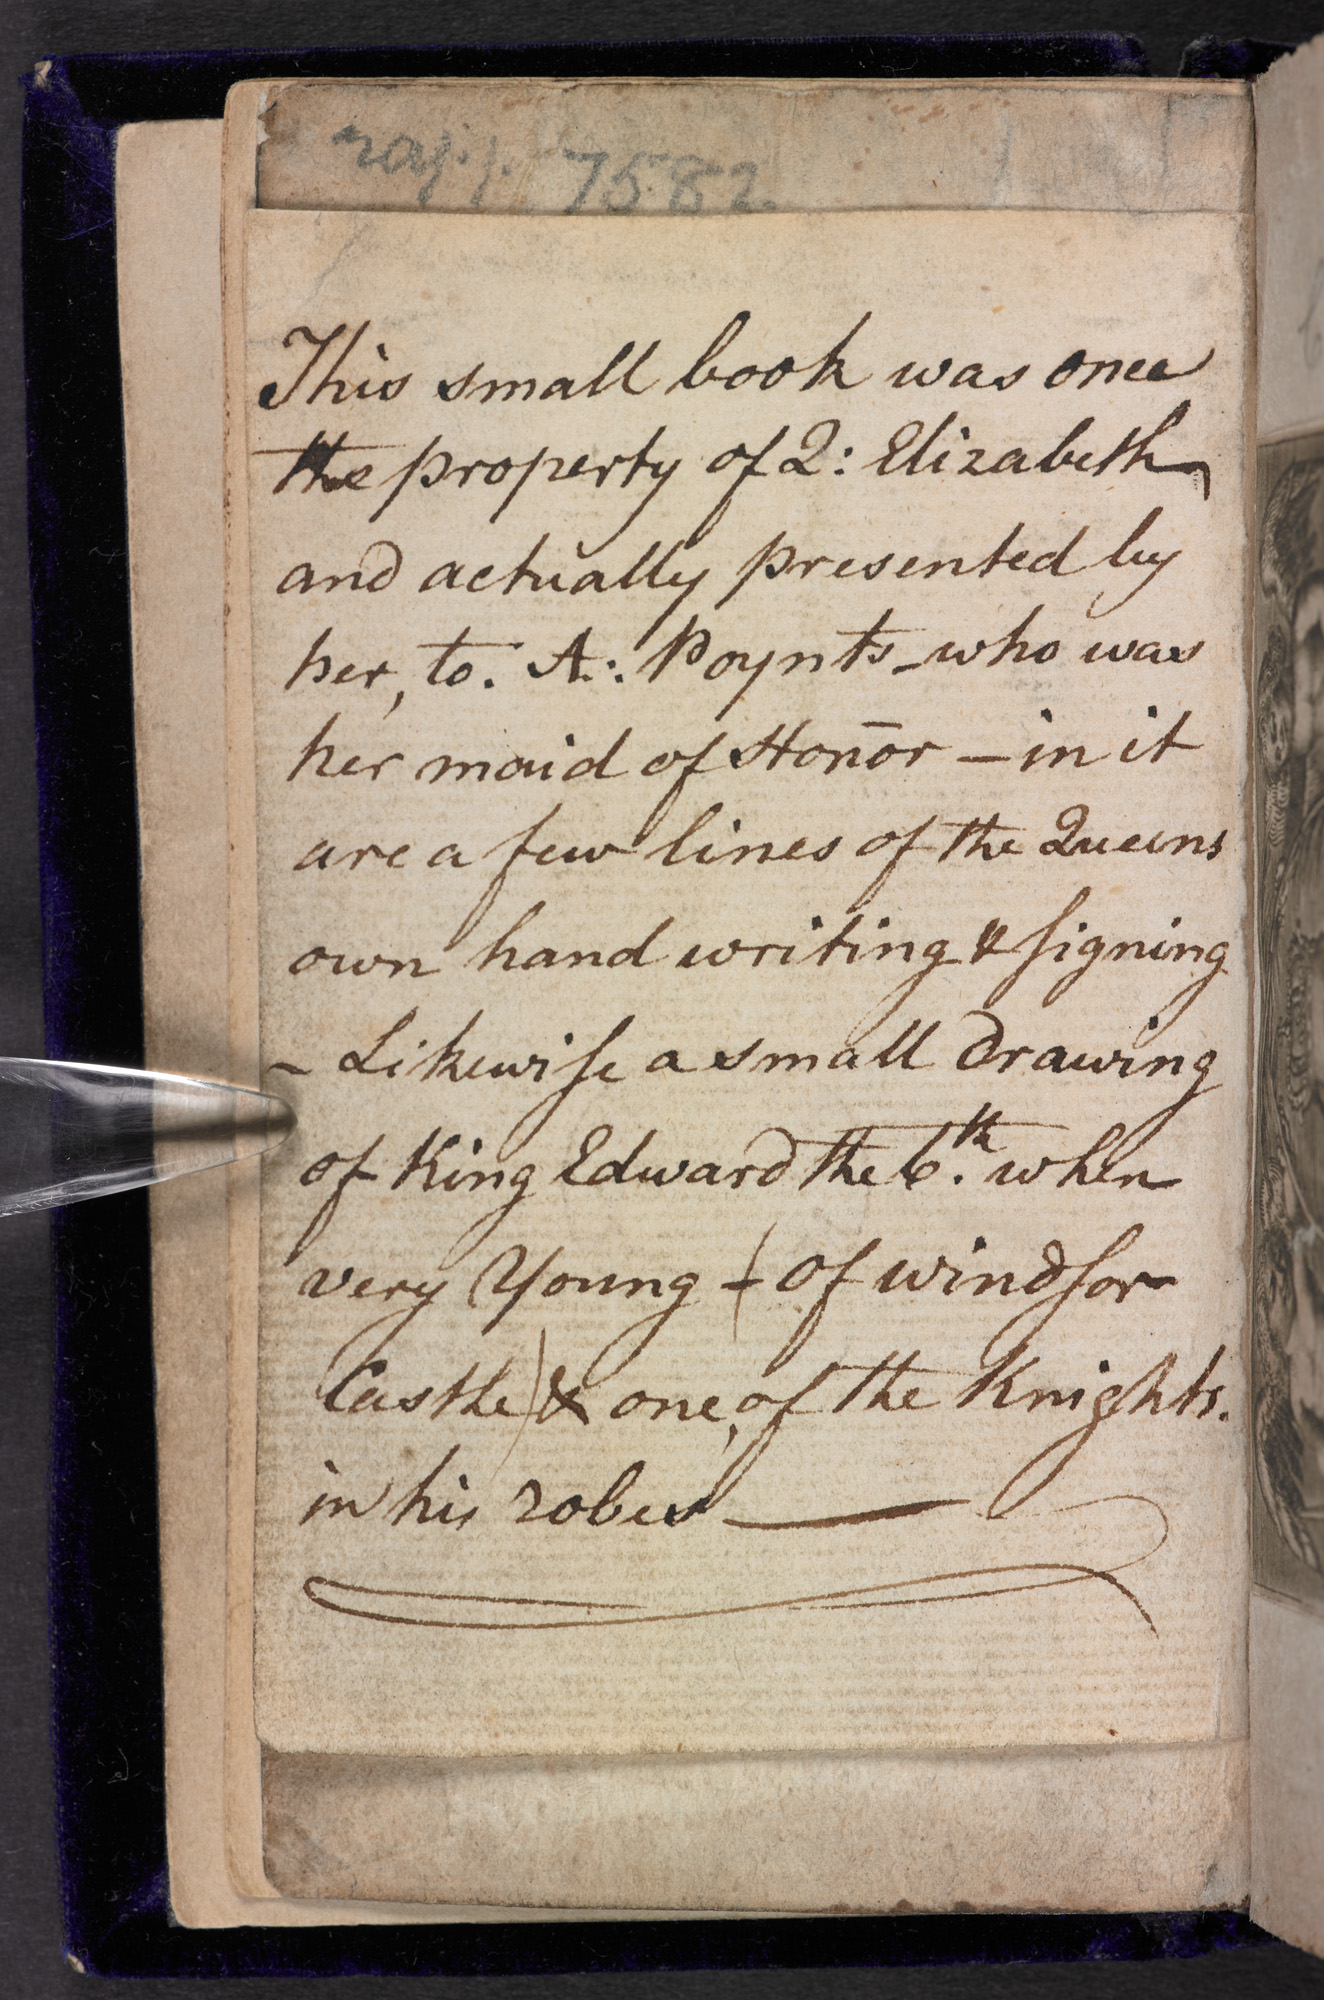 Handwritten 18th century description of the manuscript additions to this bible